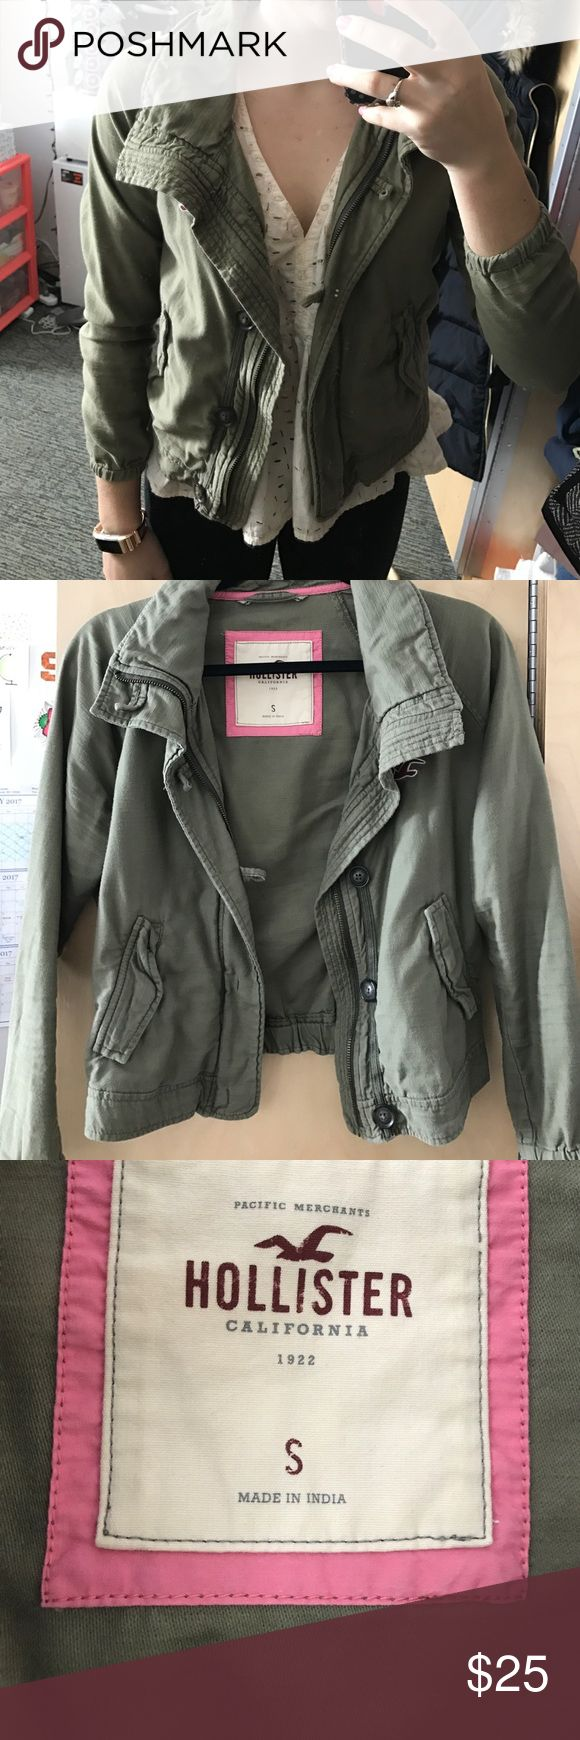 Army green Hollister Jacket Perfect for layering or throwing over a dress Hollister Jackets & Coats Utility Jackets